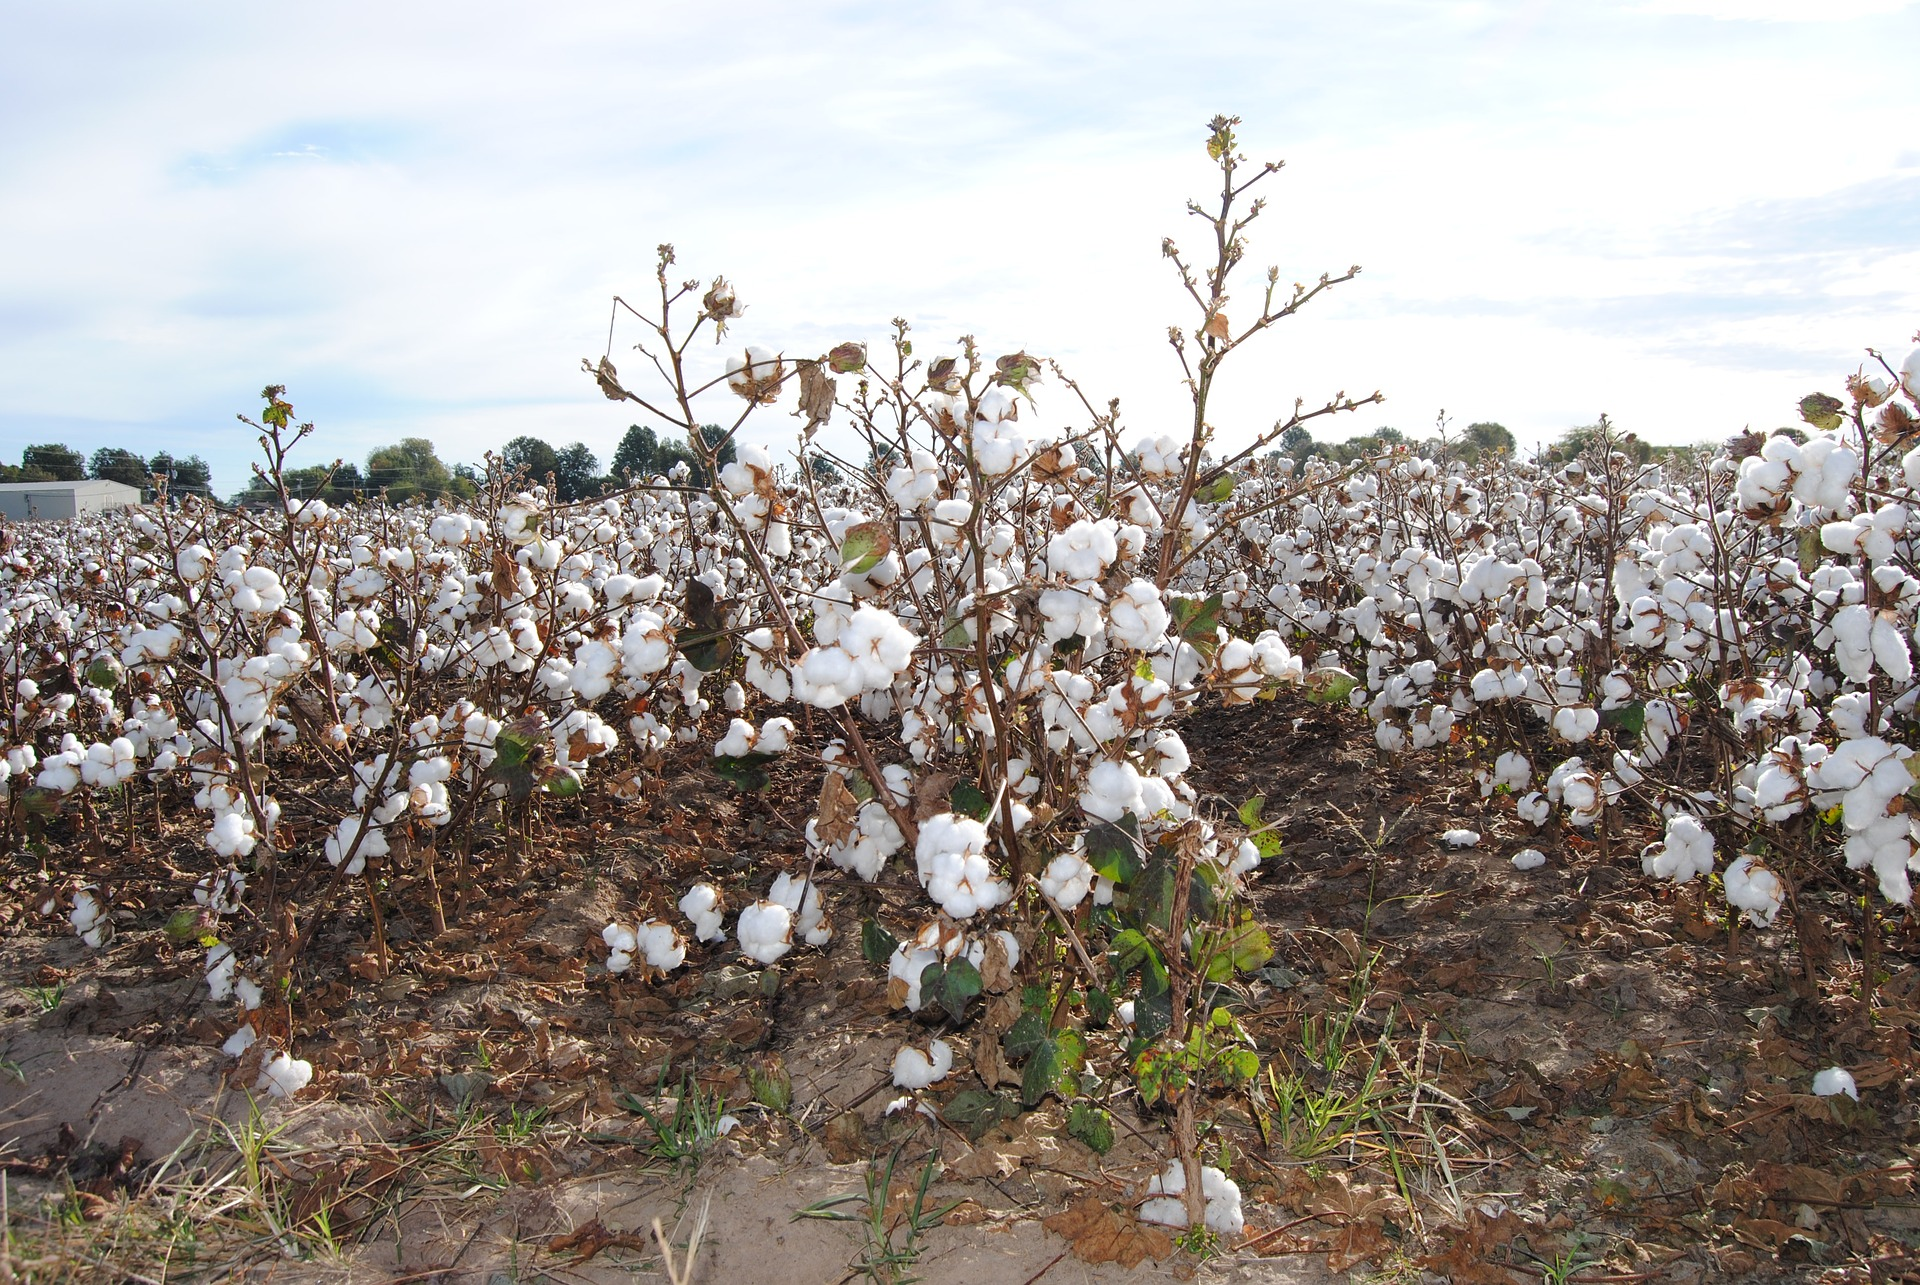 india_cotton_field